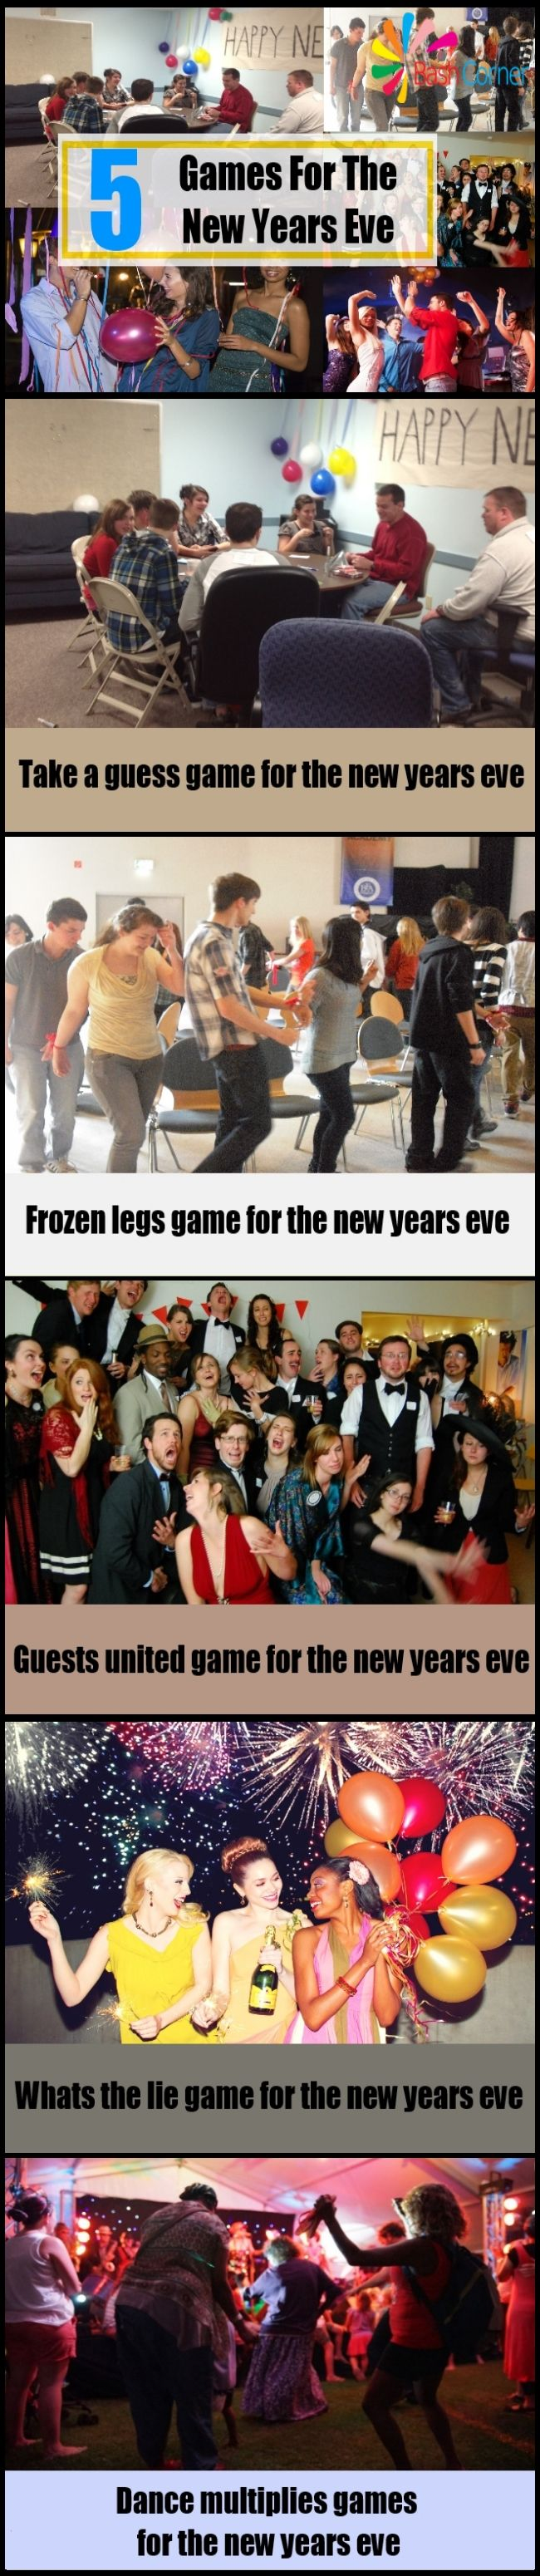 New Years Eve Party Games #newyearsevepartyideas #partygames #2015ideas